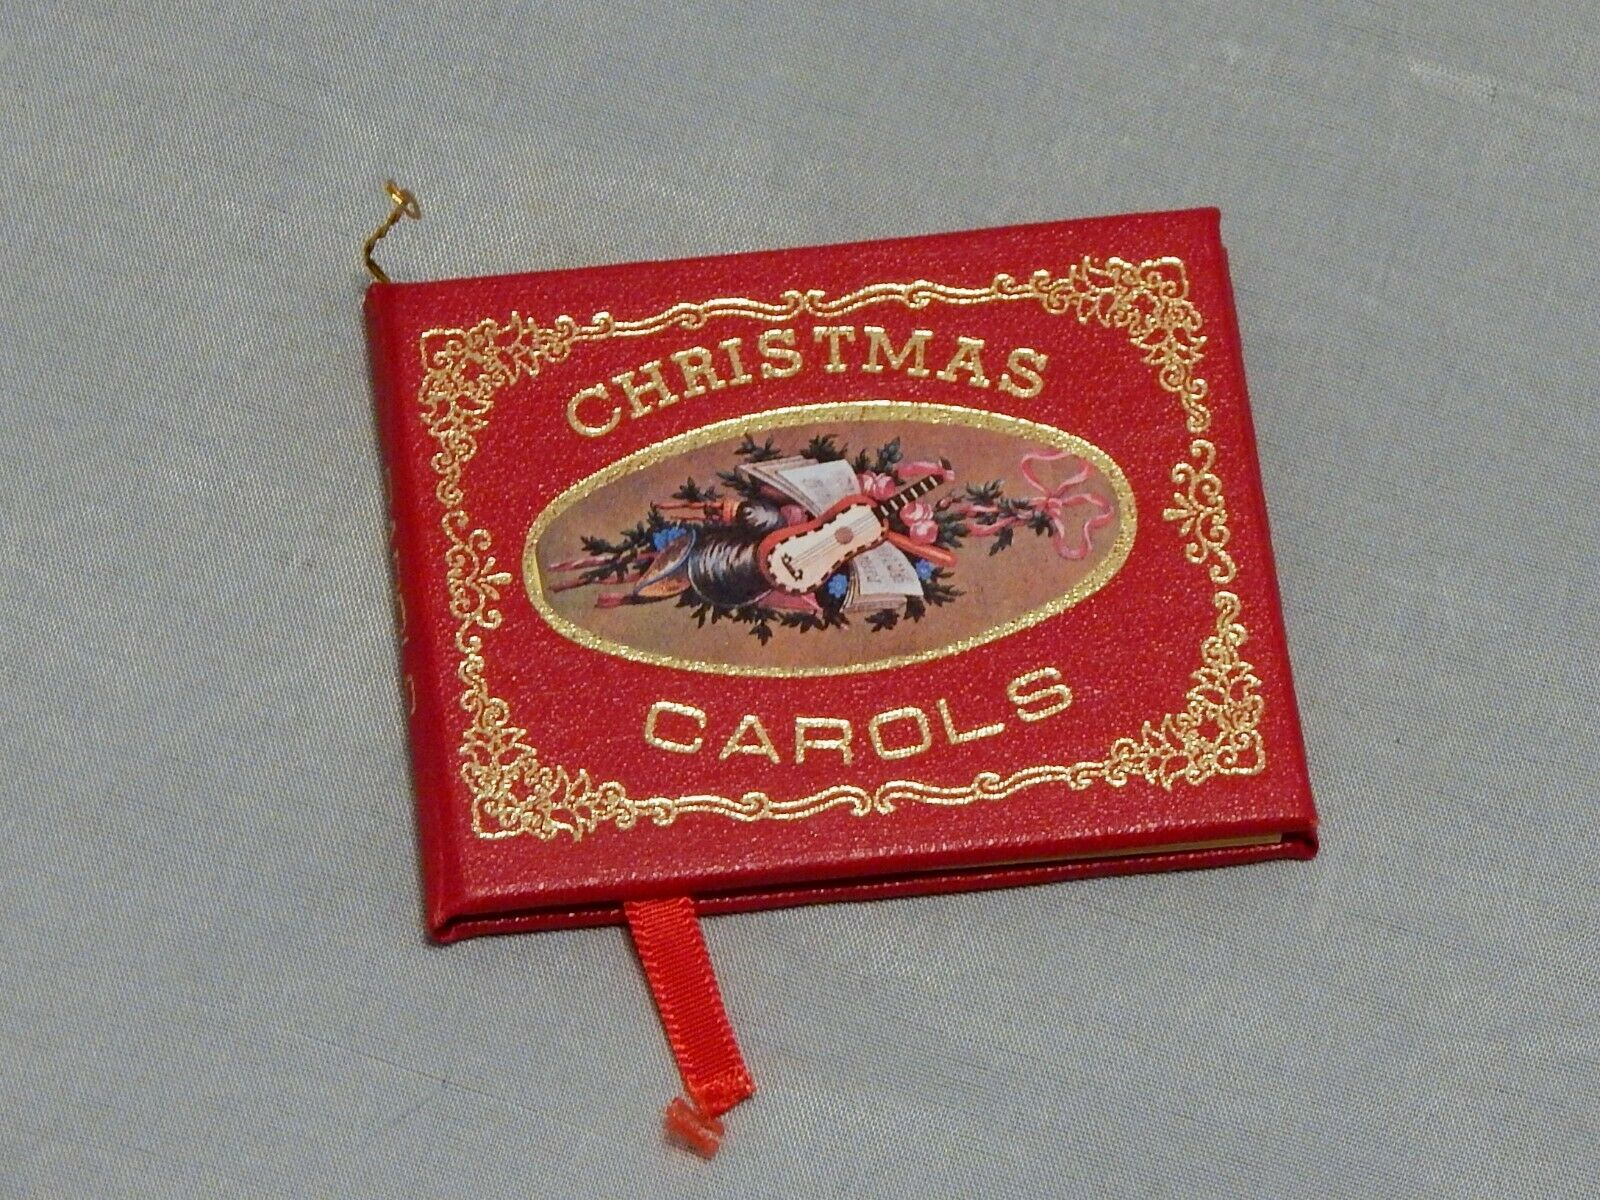 Primary image for Vintage Christmas Ornament Miniature Christmas Carols Book